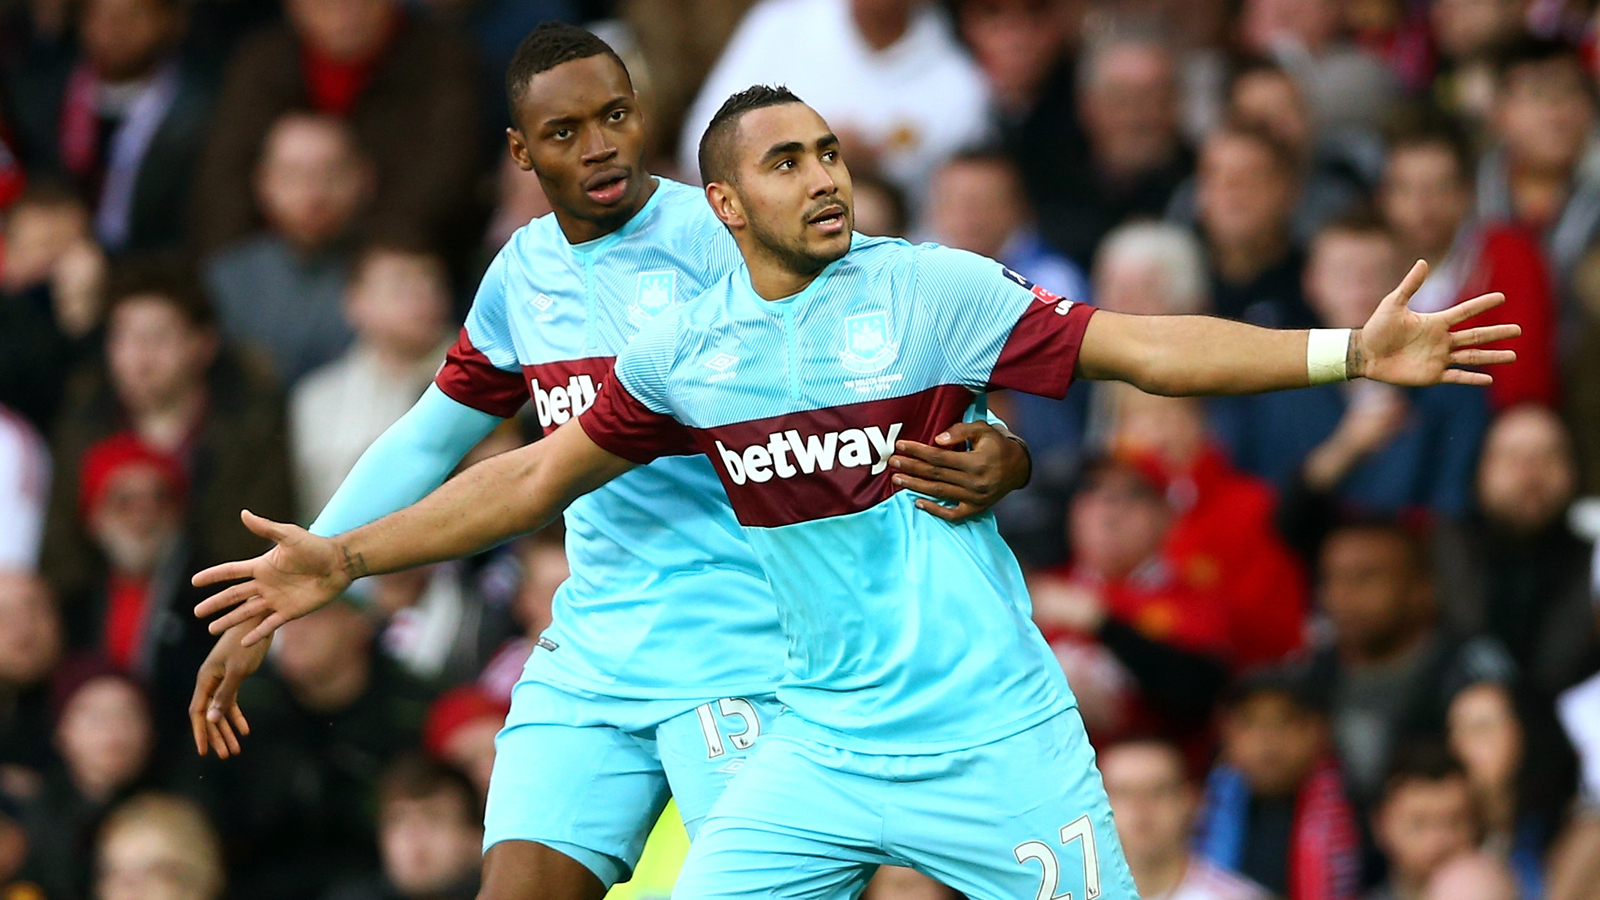 Dimitri Payet's free kick is the most beautiful thing you will see today